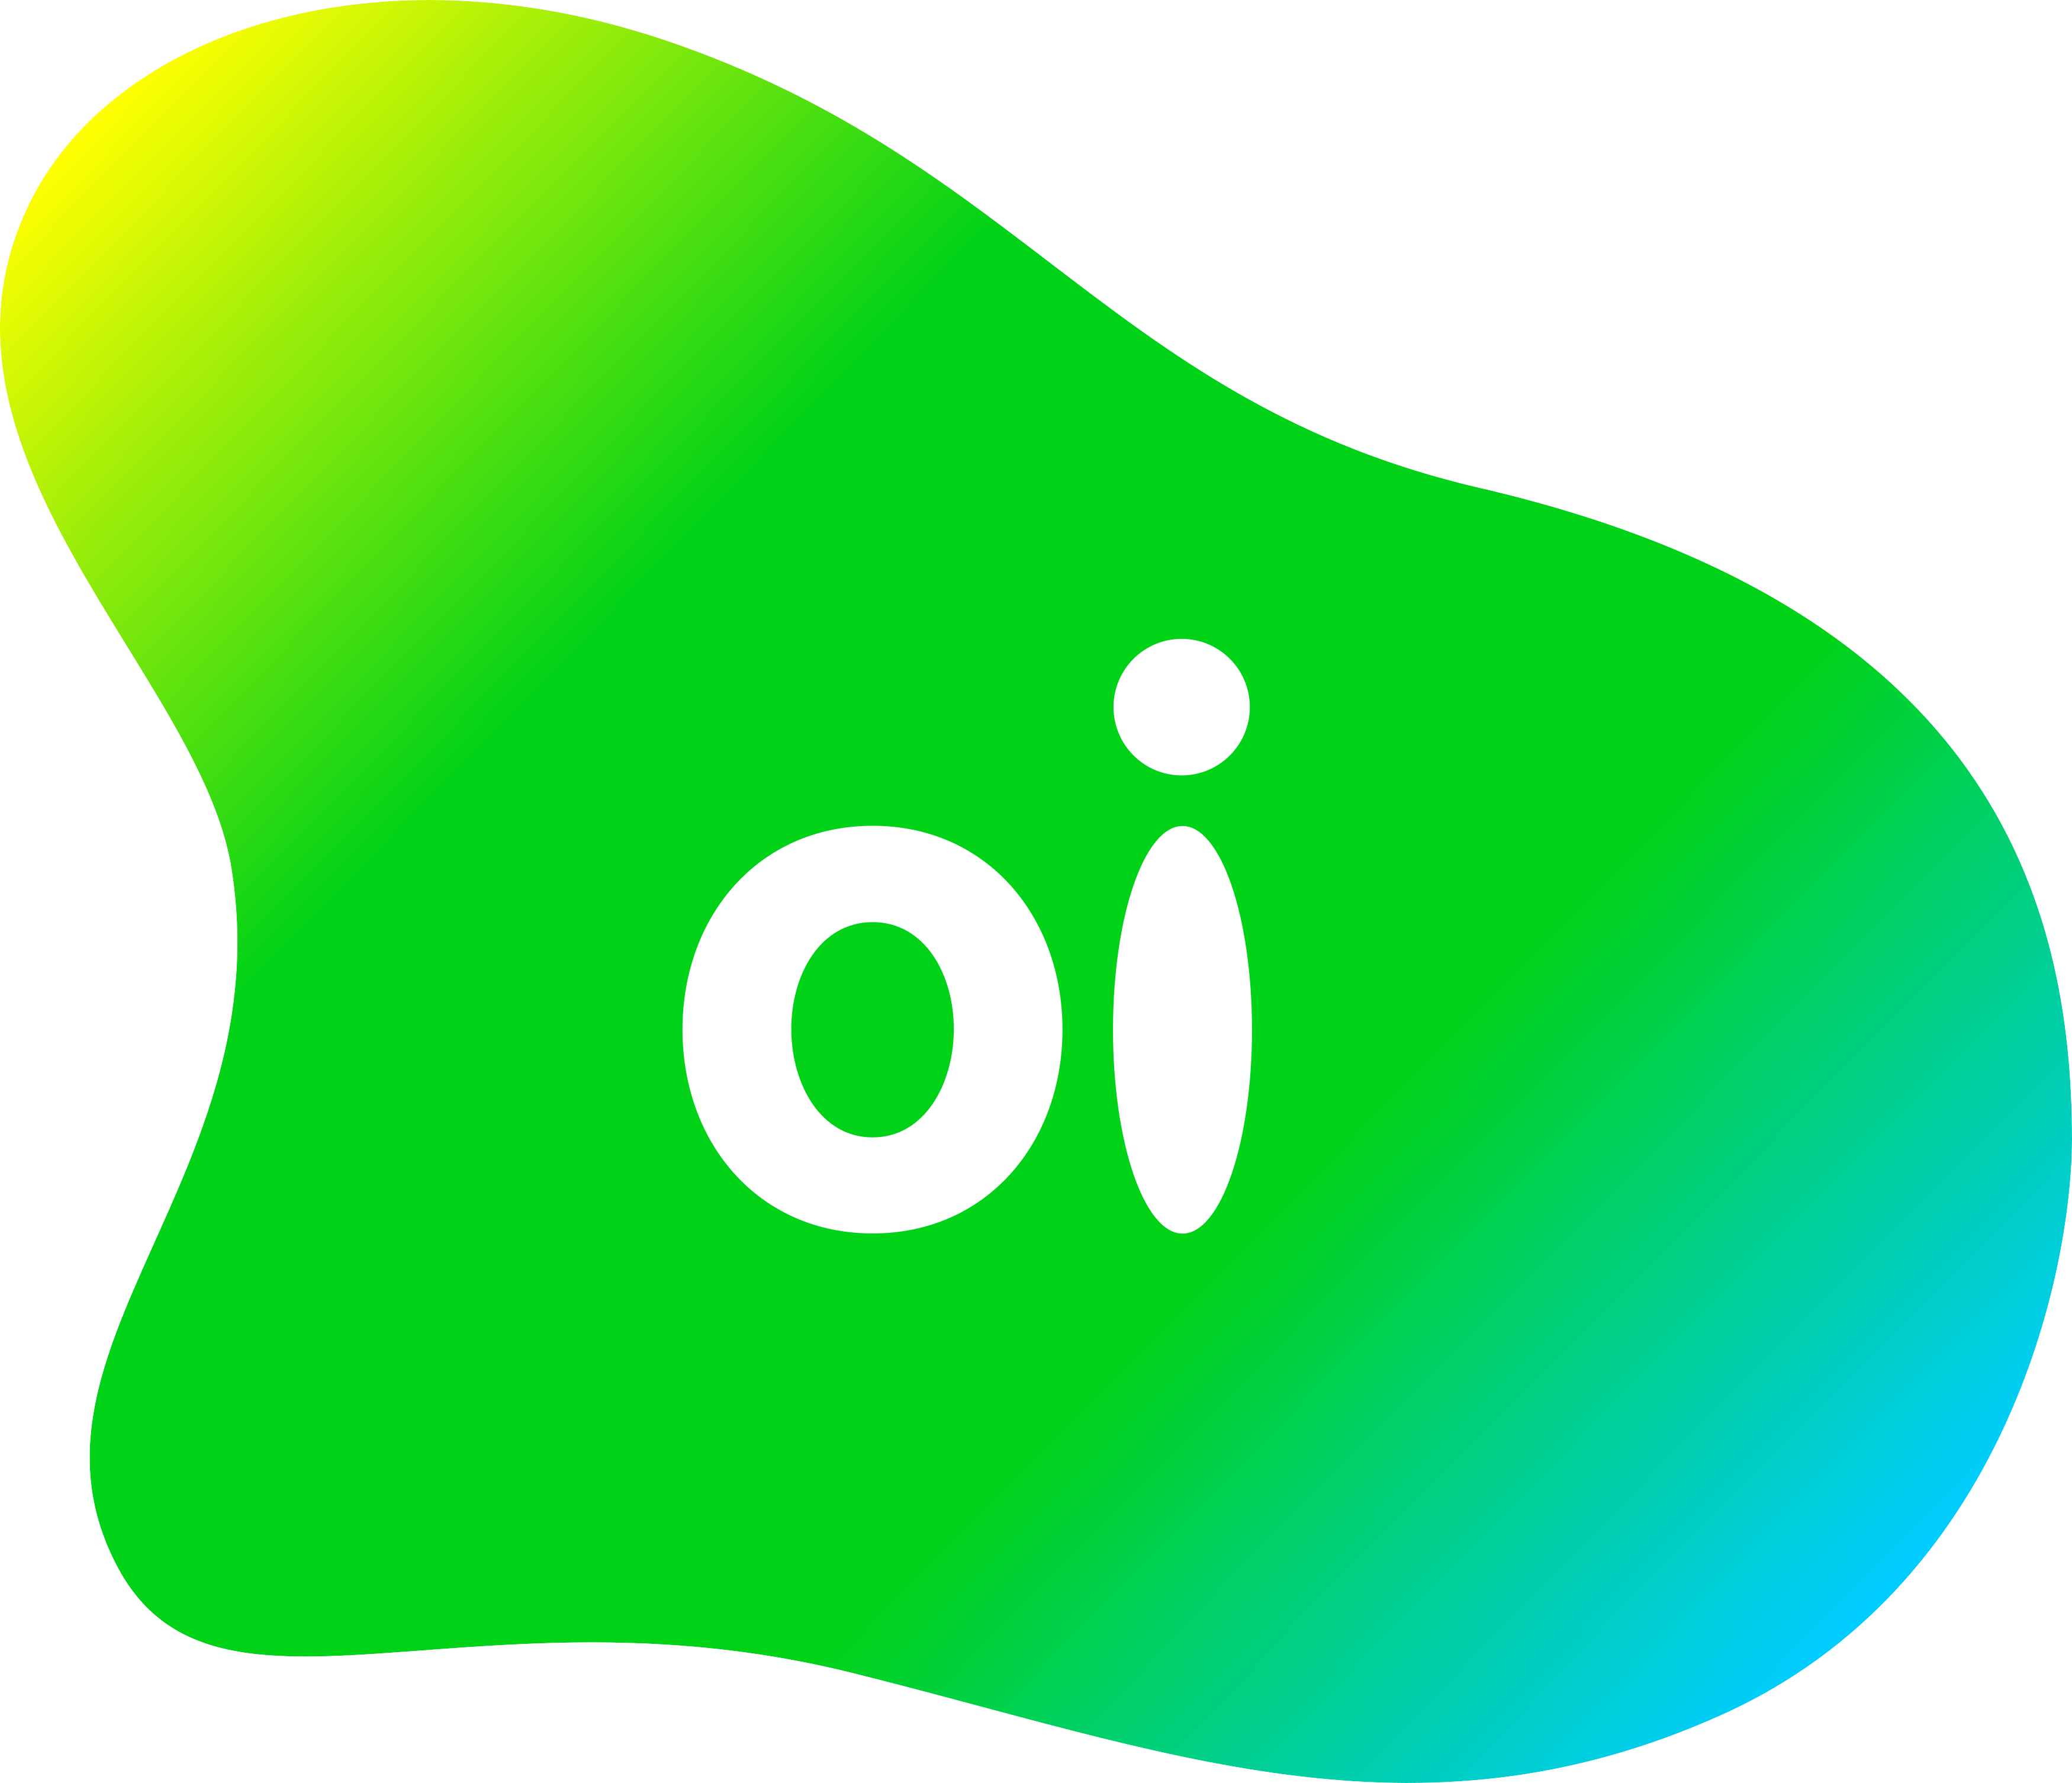 Logo oi png clipart images gallery for free download.